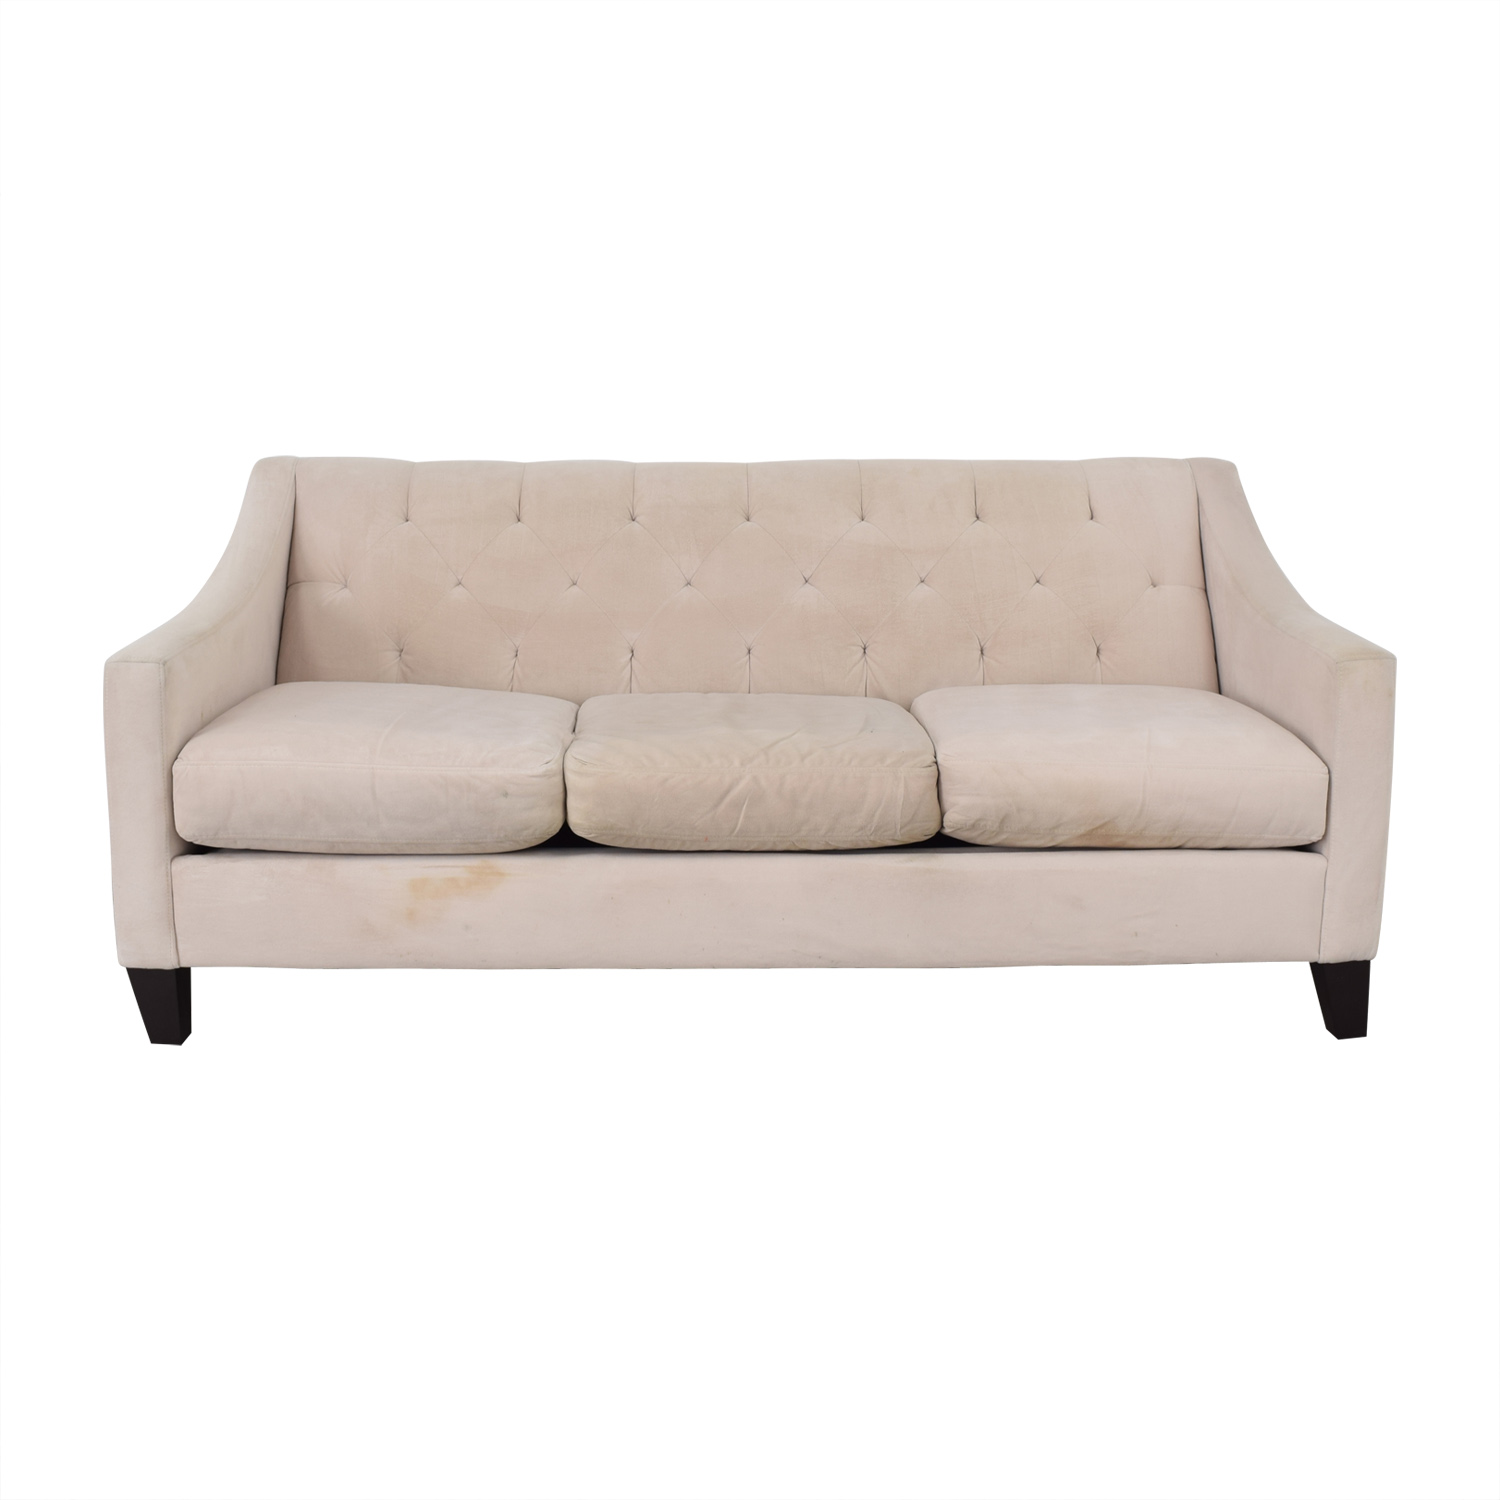 shop Max Home Max Home Three Cushion Sofa online